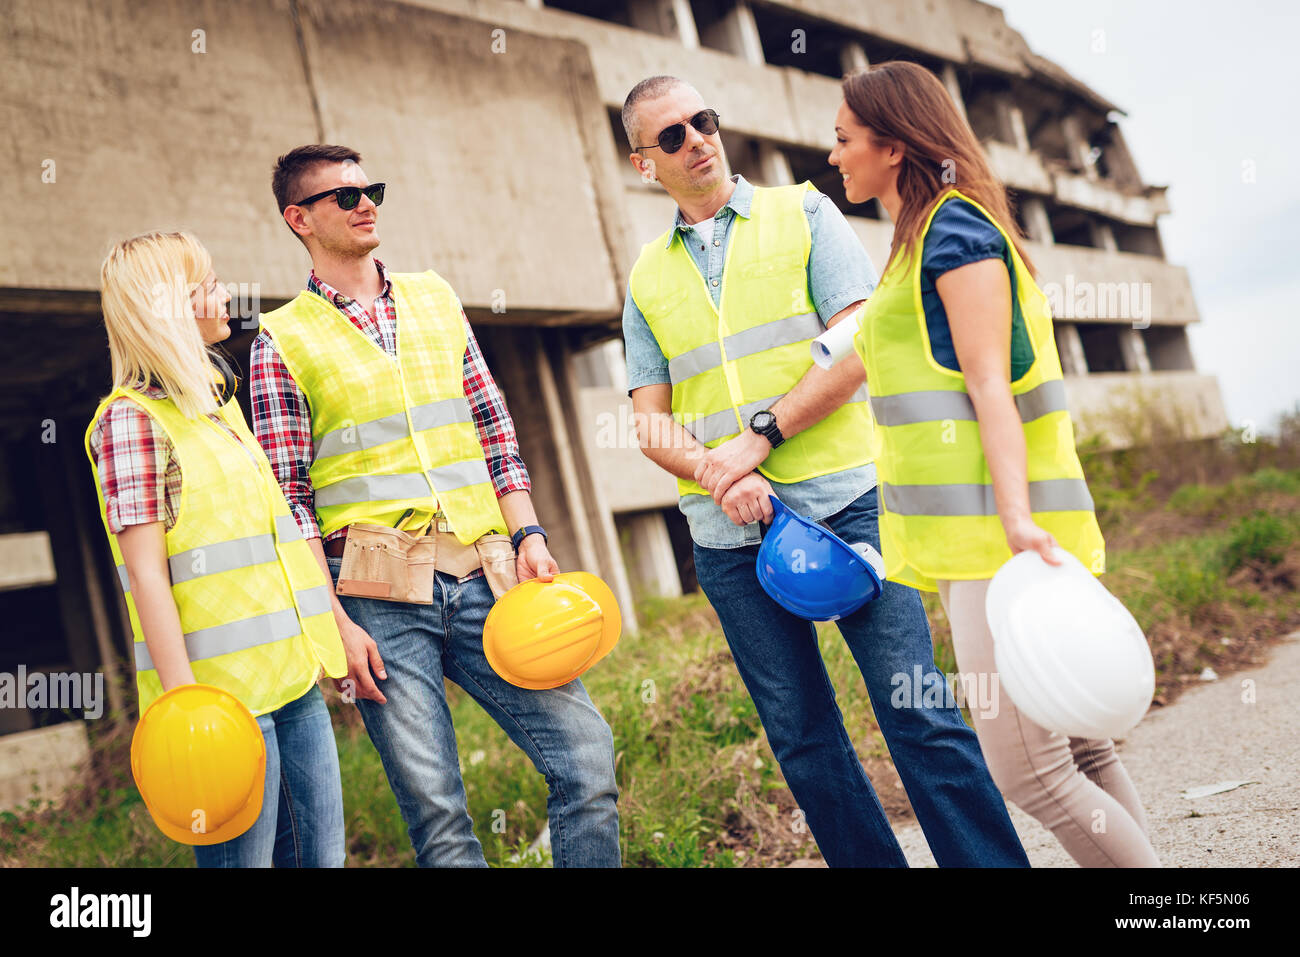 Four construction architects talking in front building damaged in the disaster. - Stock Image